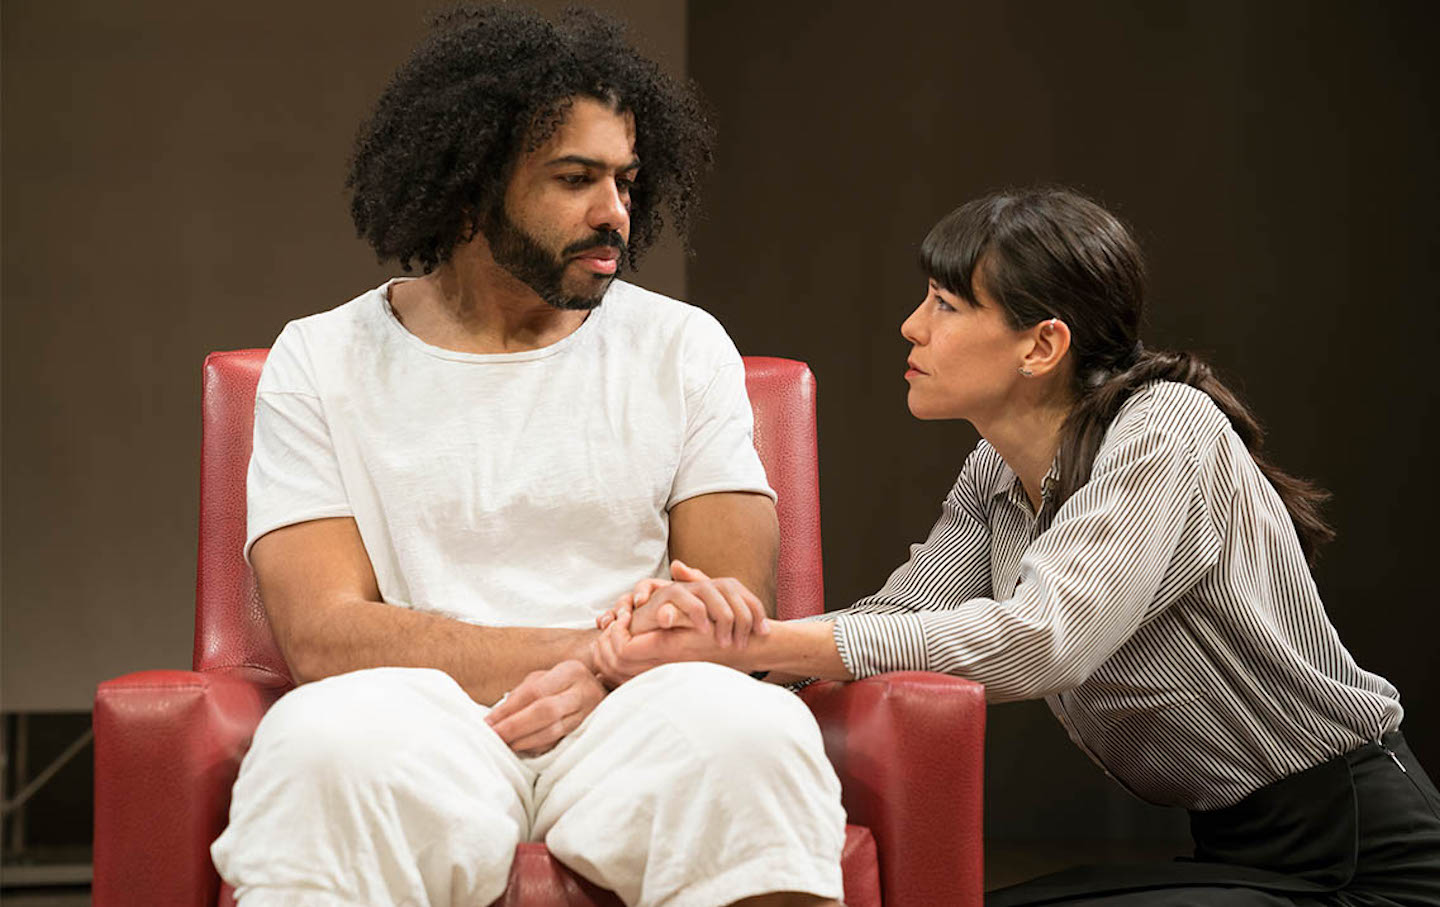 Suzan Lori Parks Dares To Get Into Your Head The Nation At 26, marcus thomas survived a skiing accident which left him paralyzed from the neck down. suzan lori parks dares to get into your